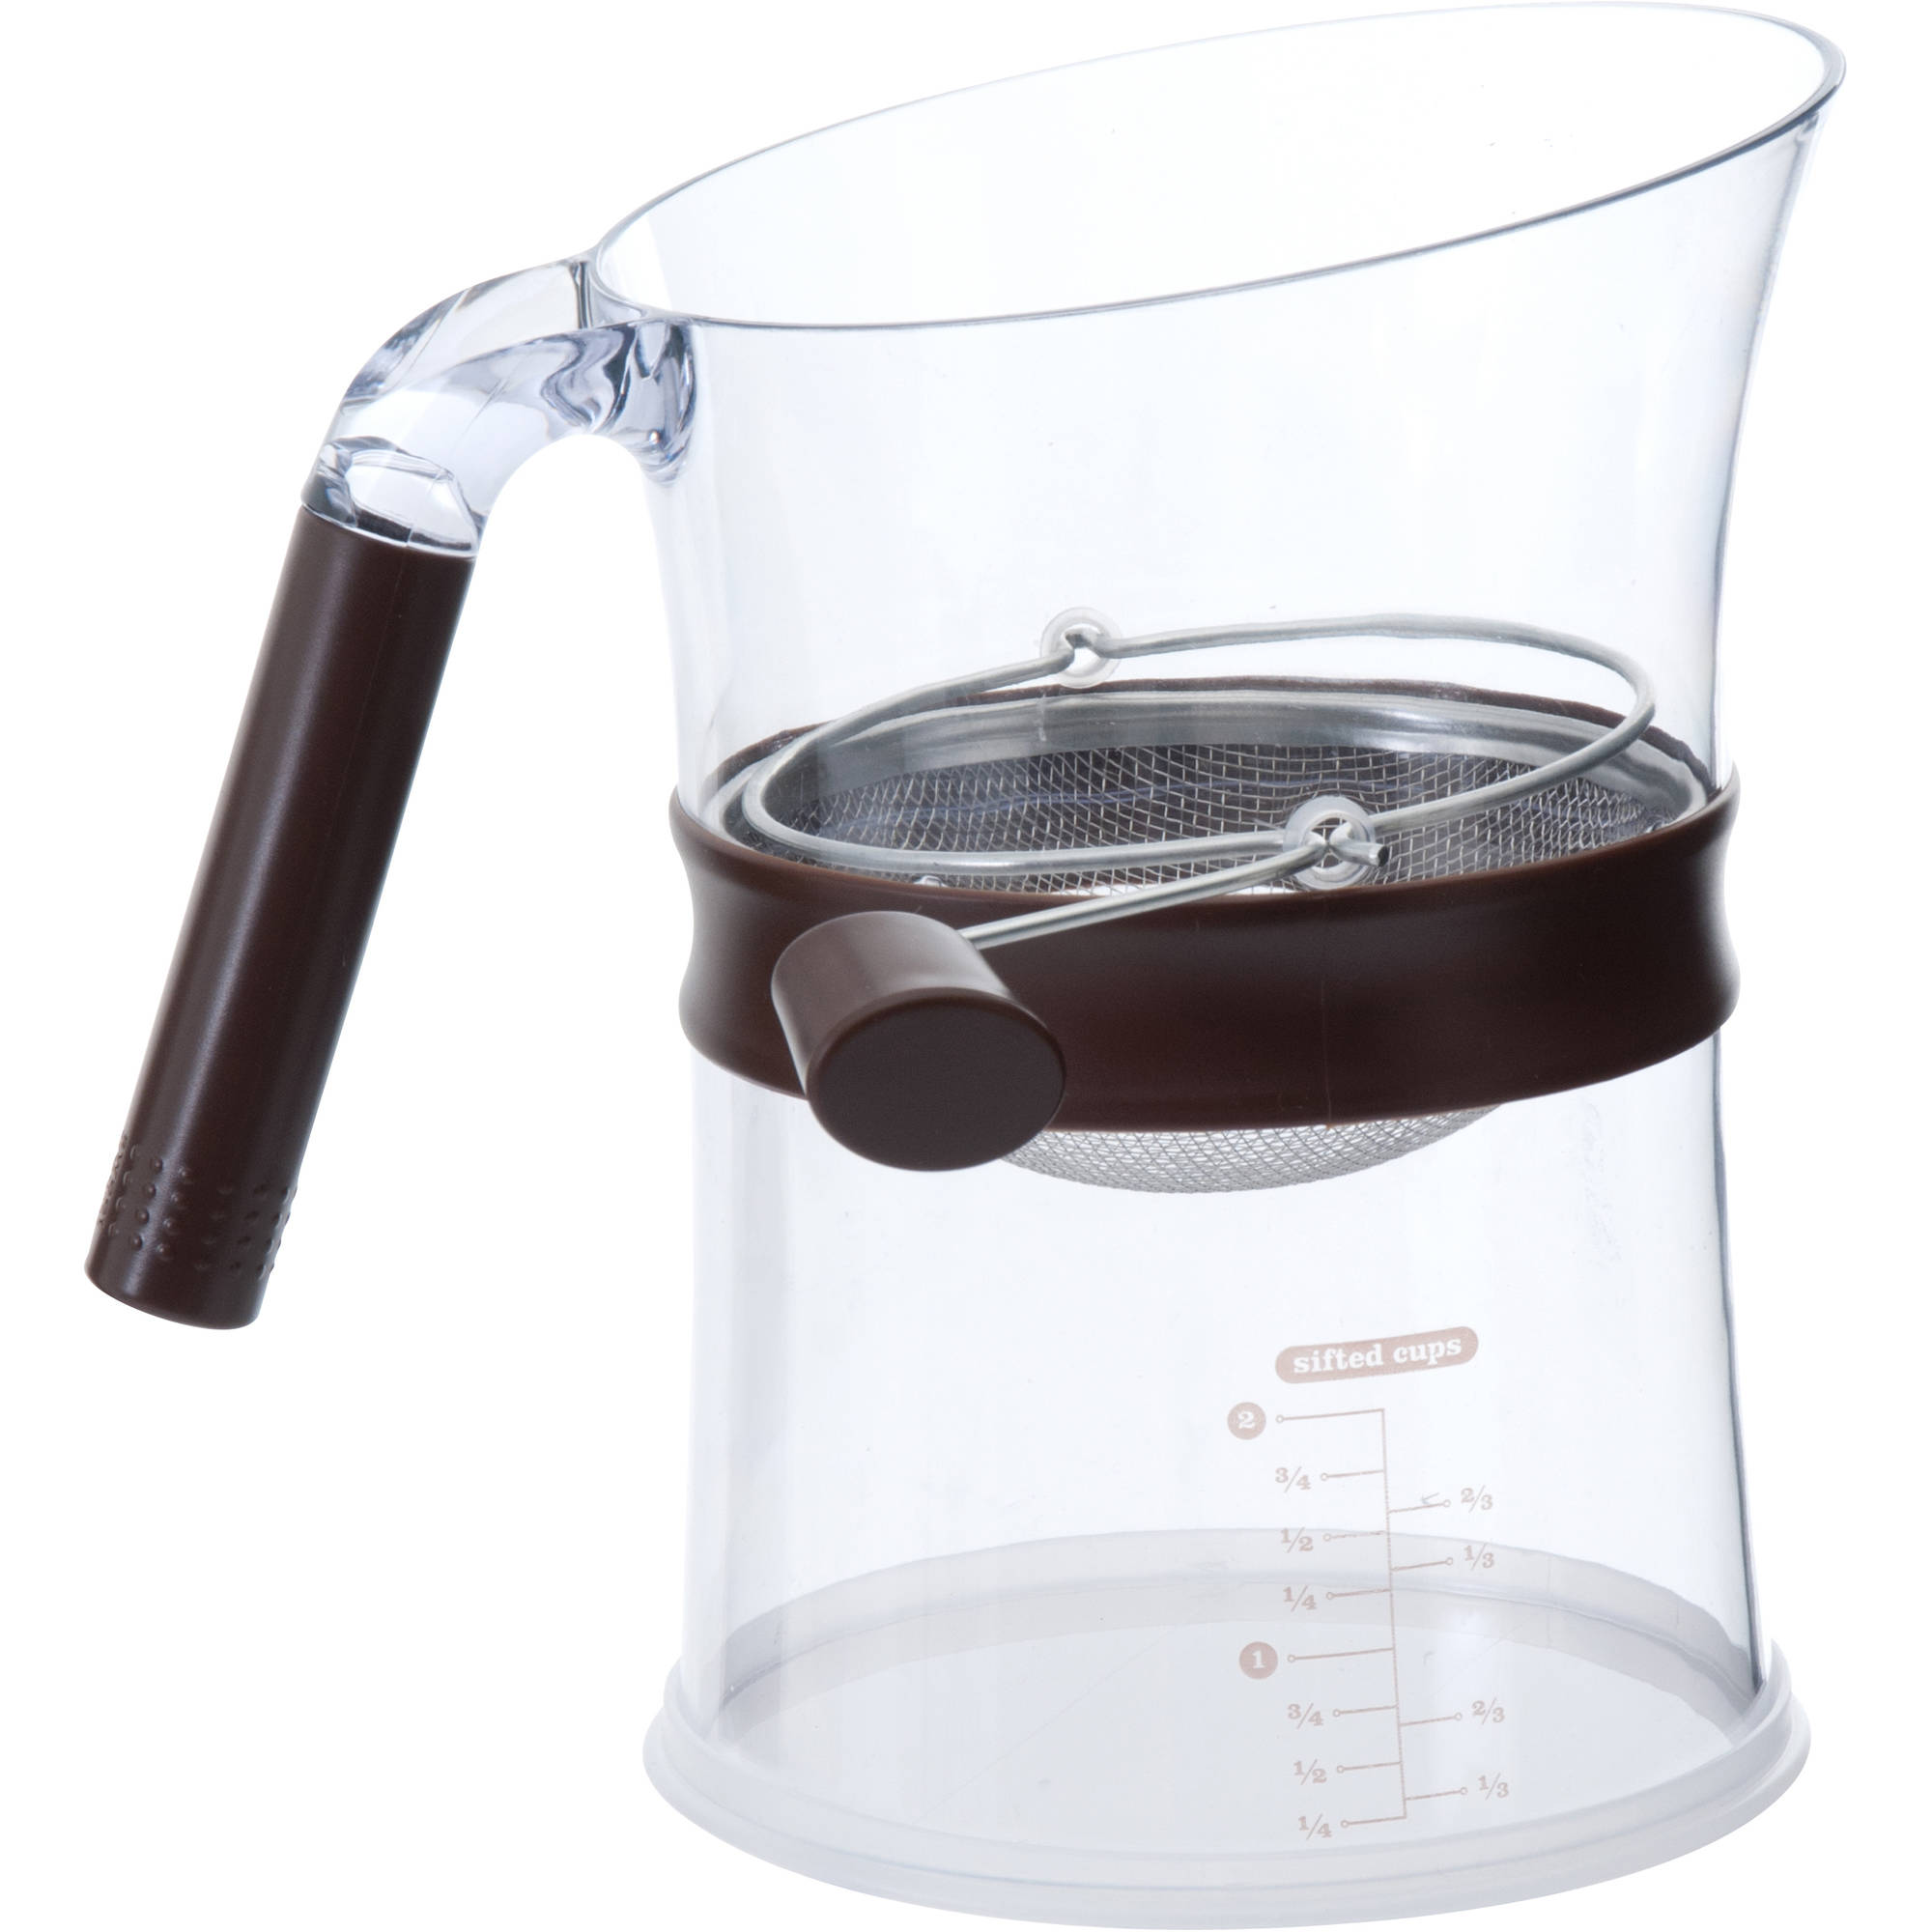 Sweet Creations Sifter and Measuring Cup